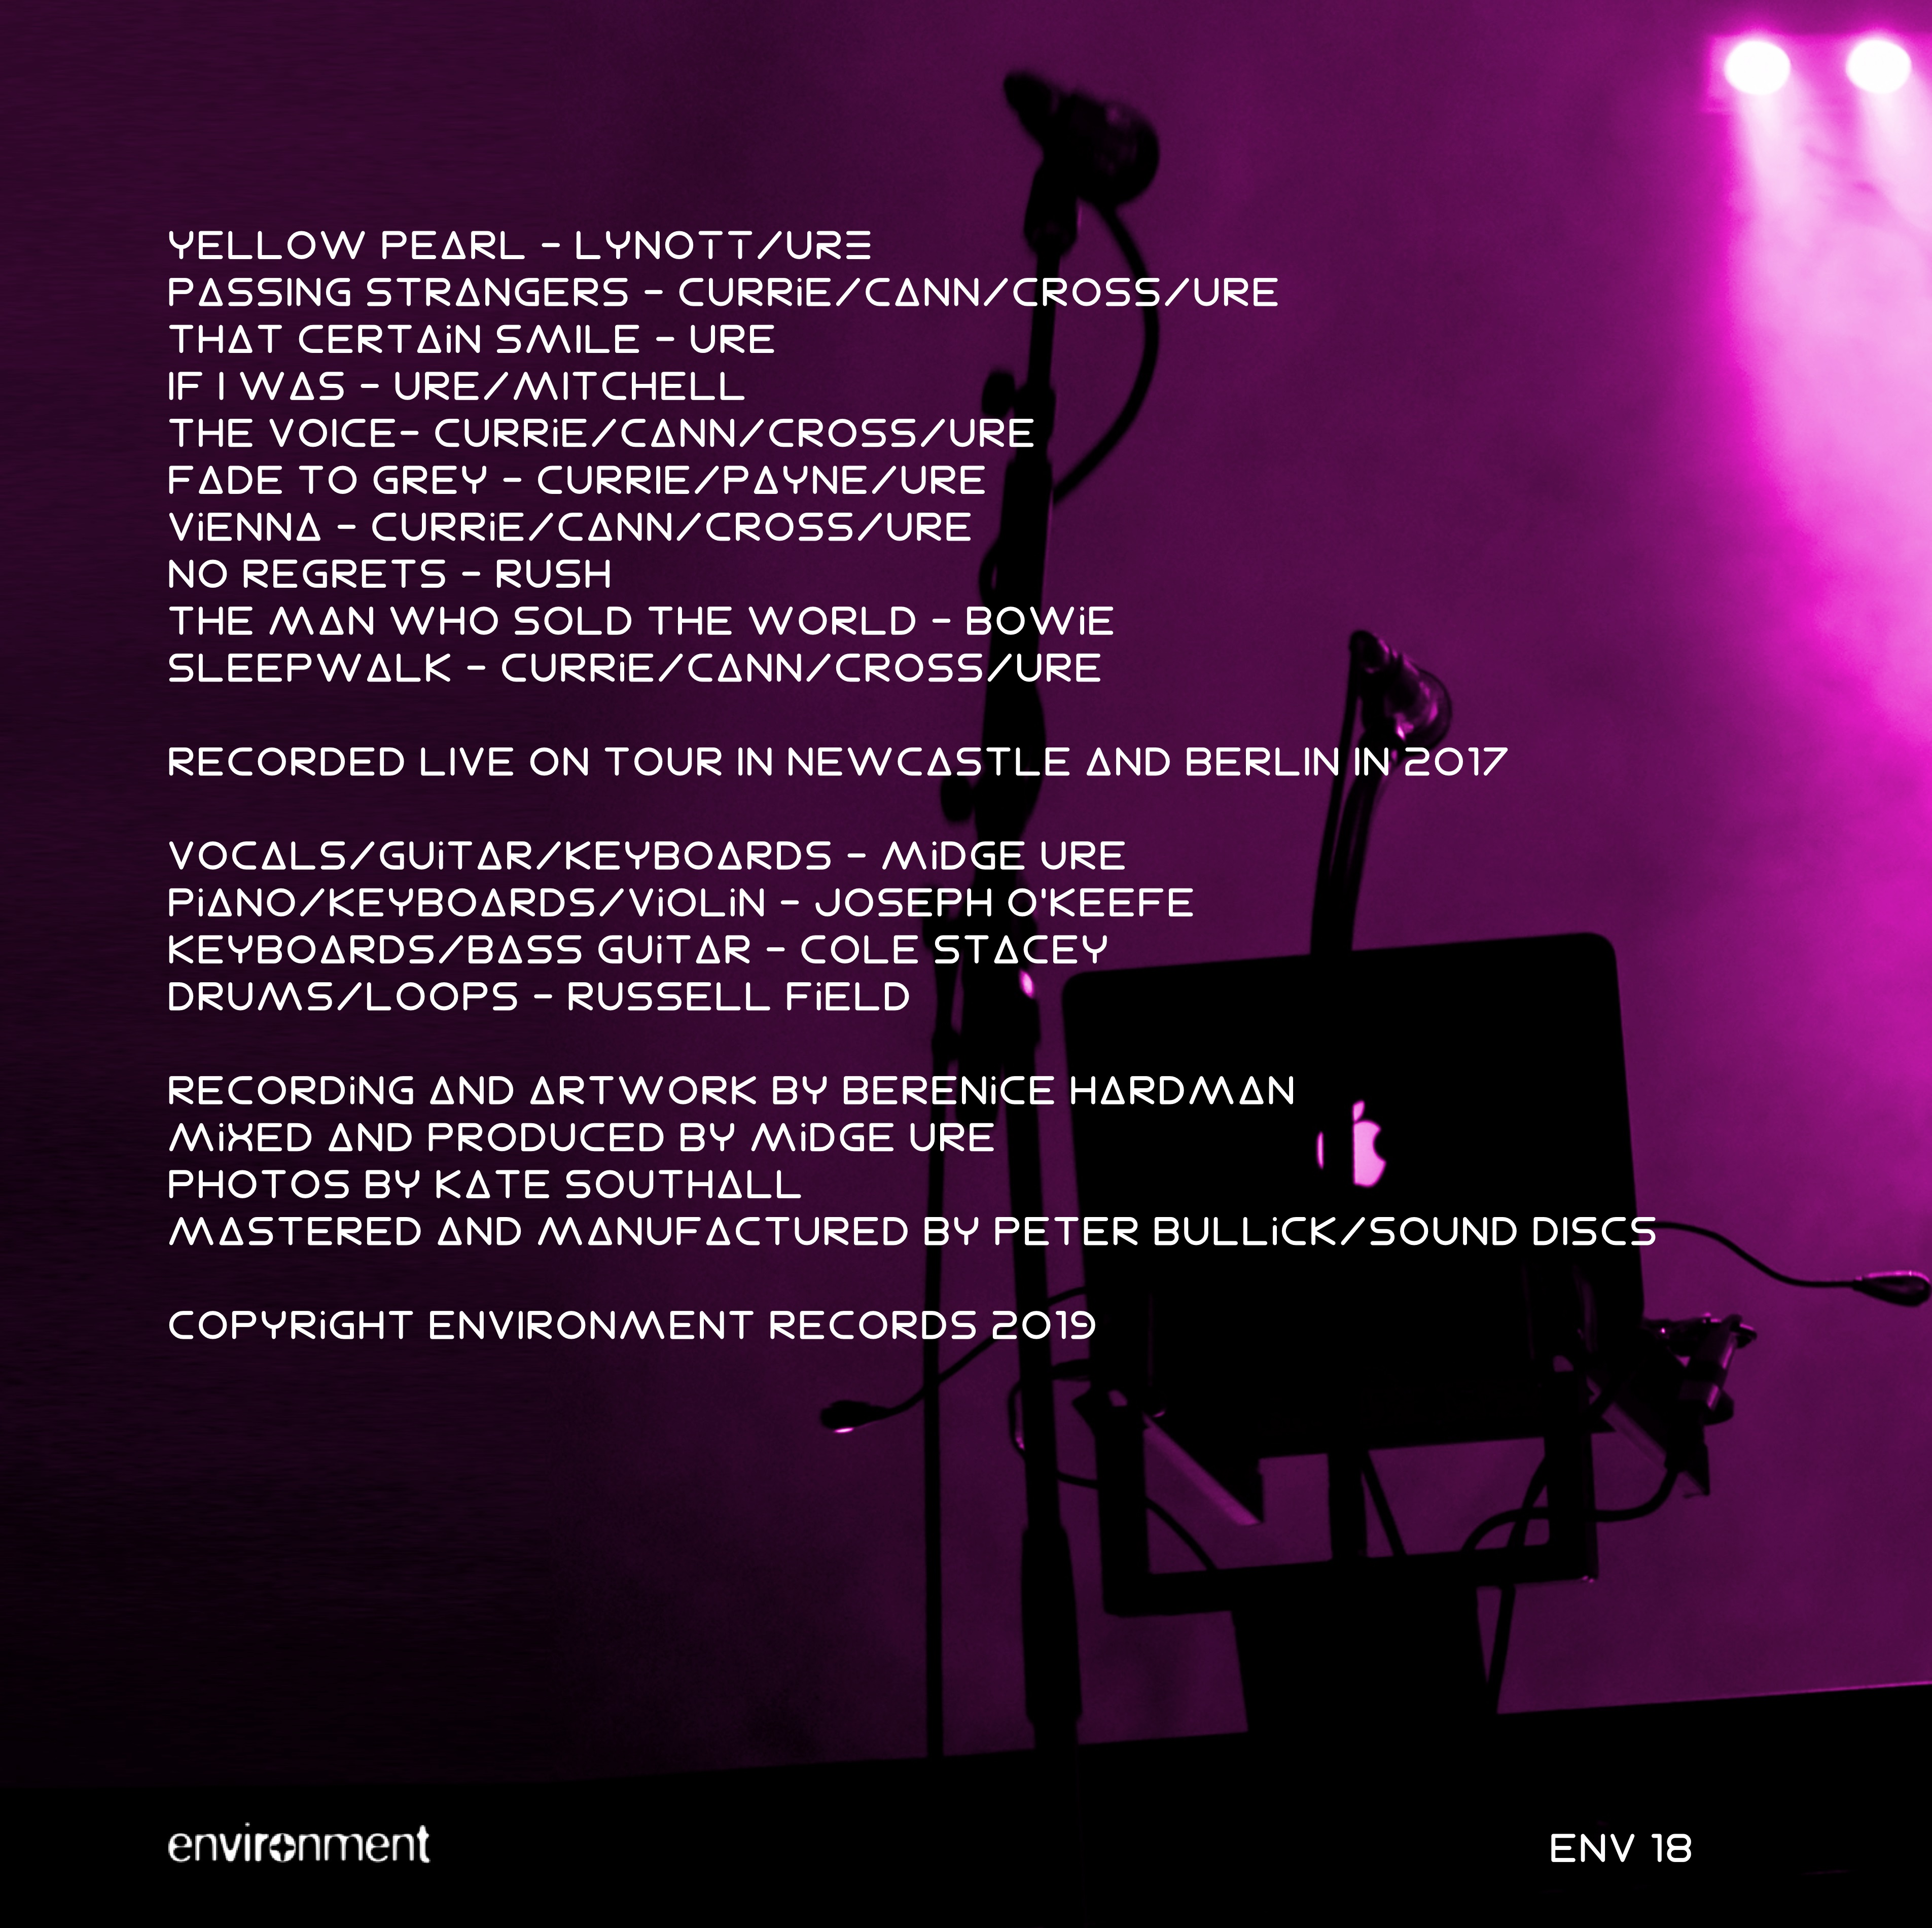 Band Electronica Live in 2017 LP